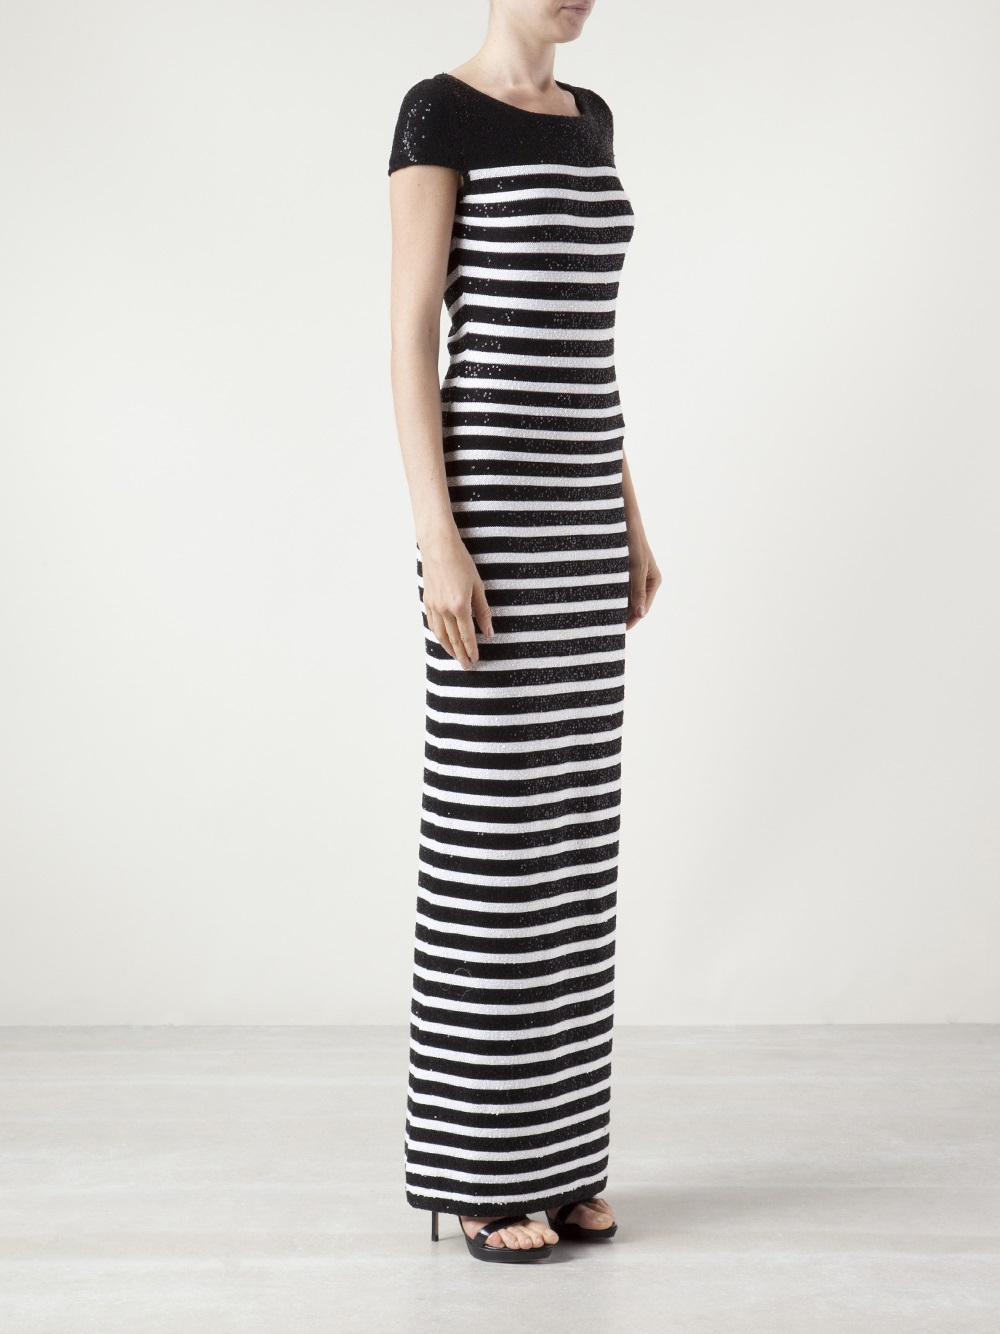 Lyst - Oscar De La Renta Long Striped Gown in Black